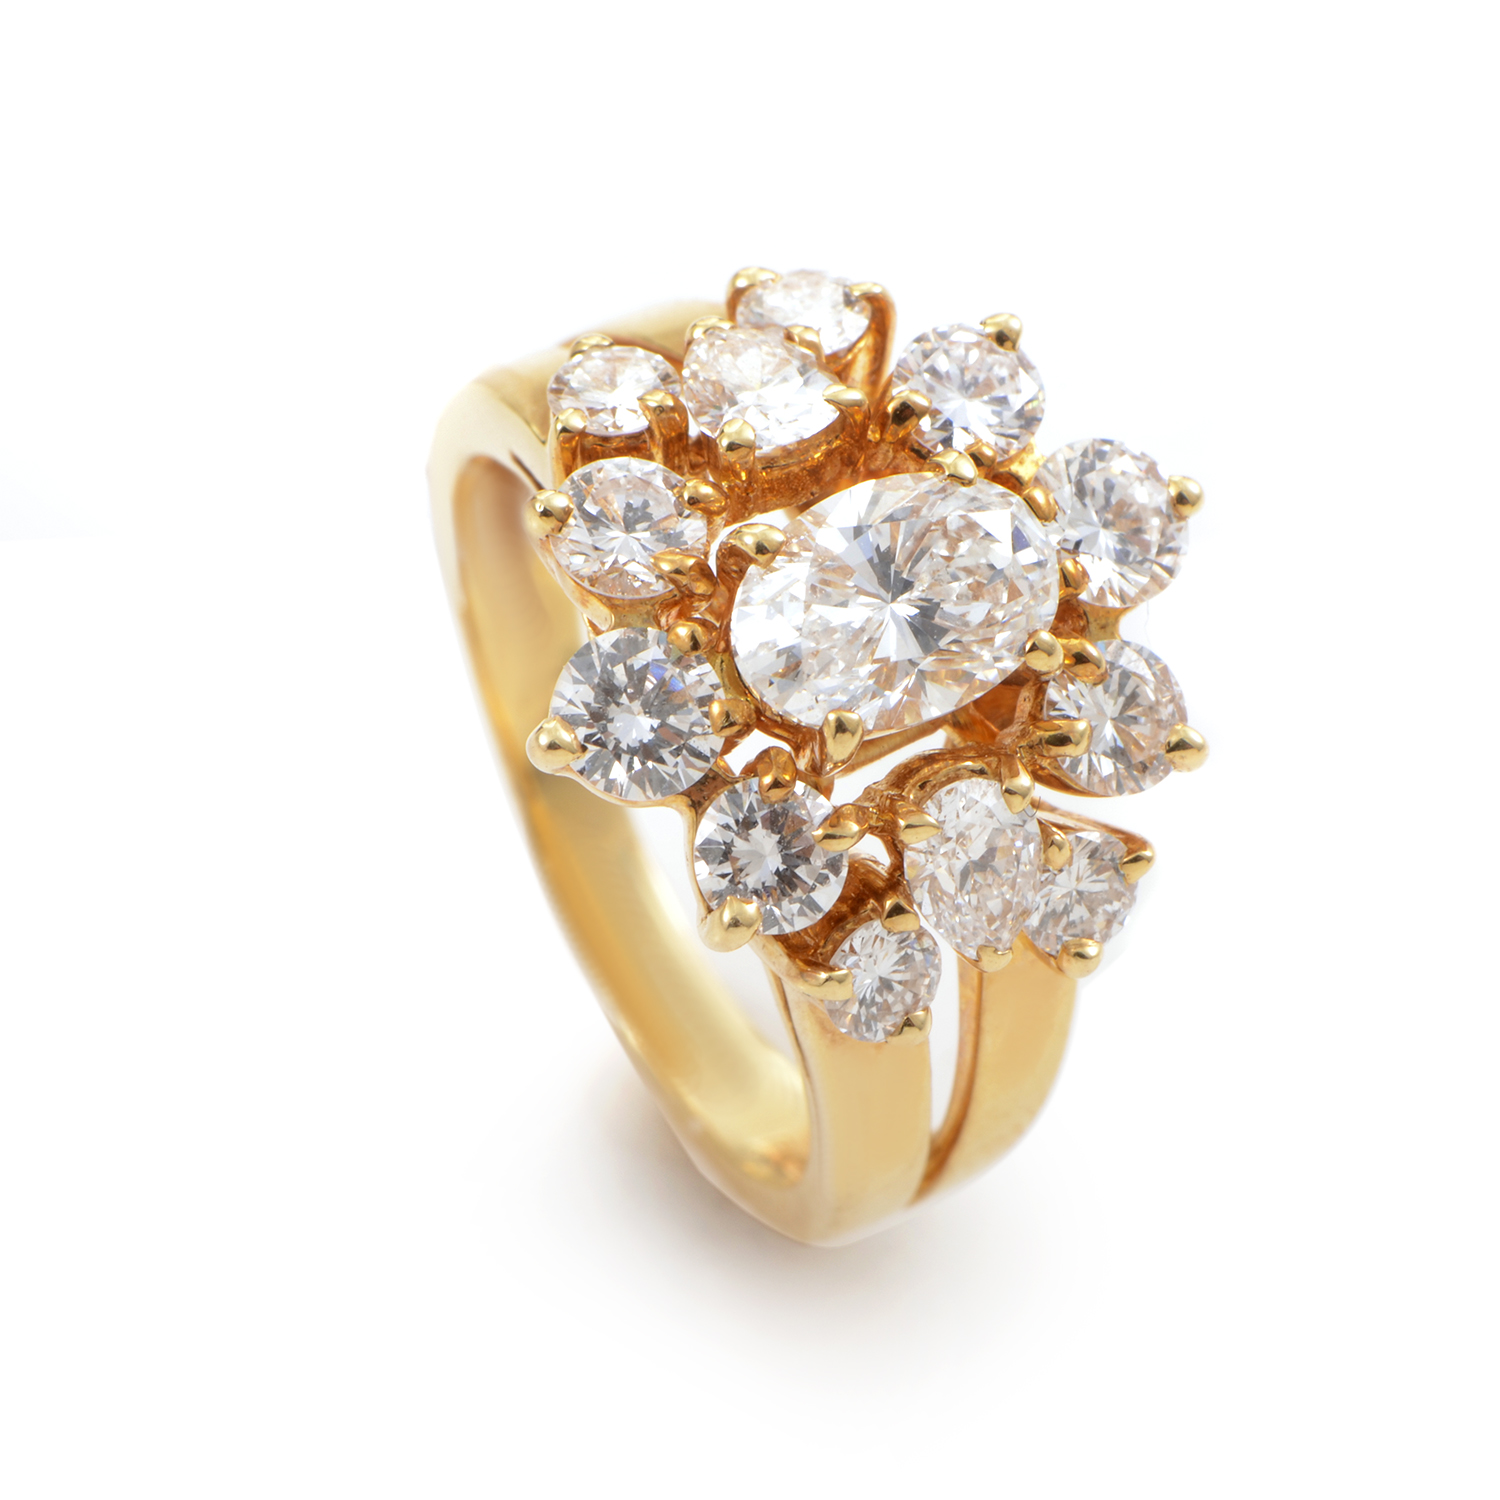 Chaumet 18K Yellow Gold Diamond Cluster Ring